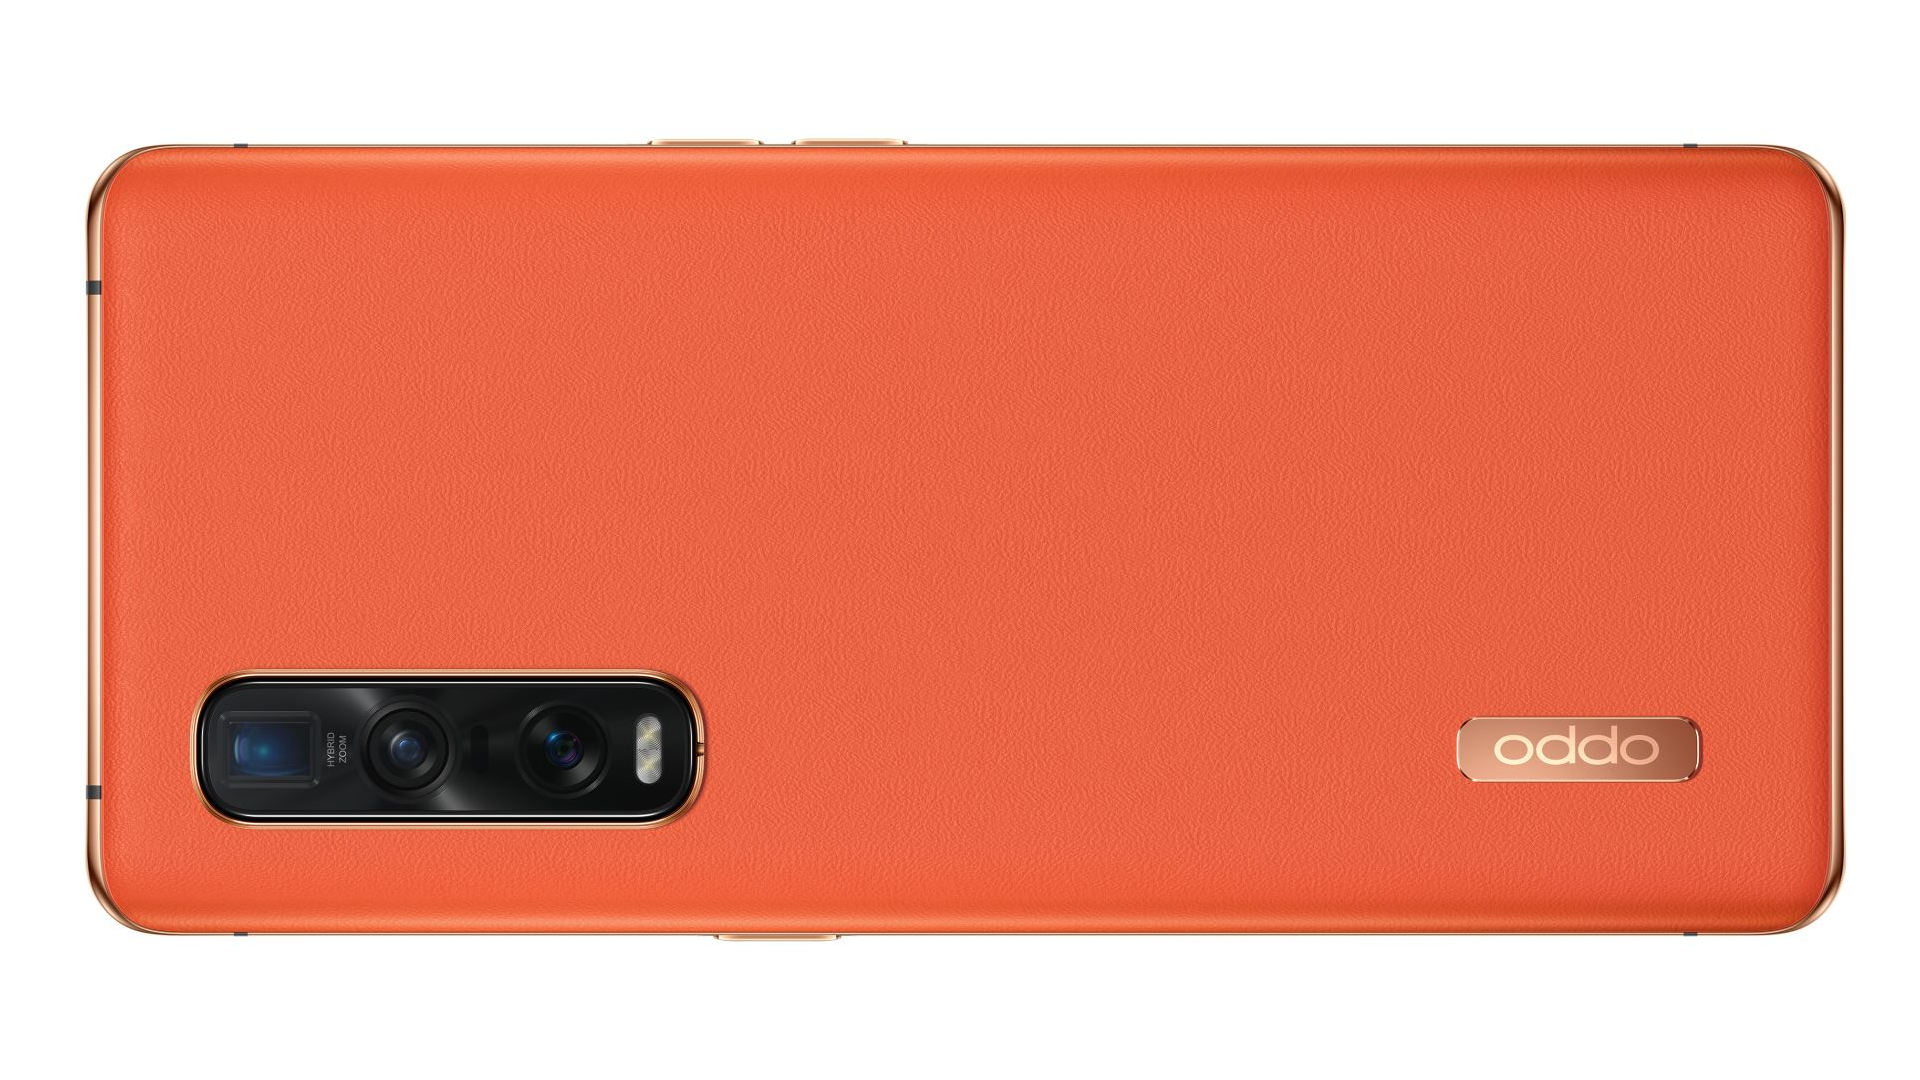 A photo of the orange leather Oppo Find X2